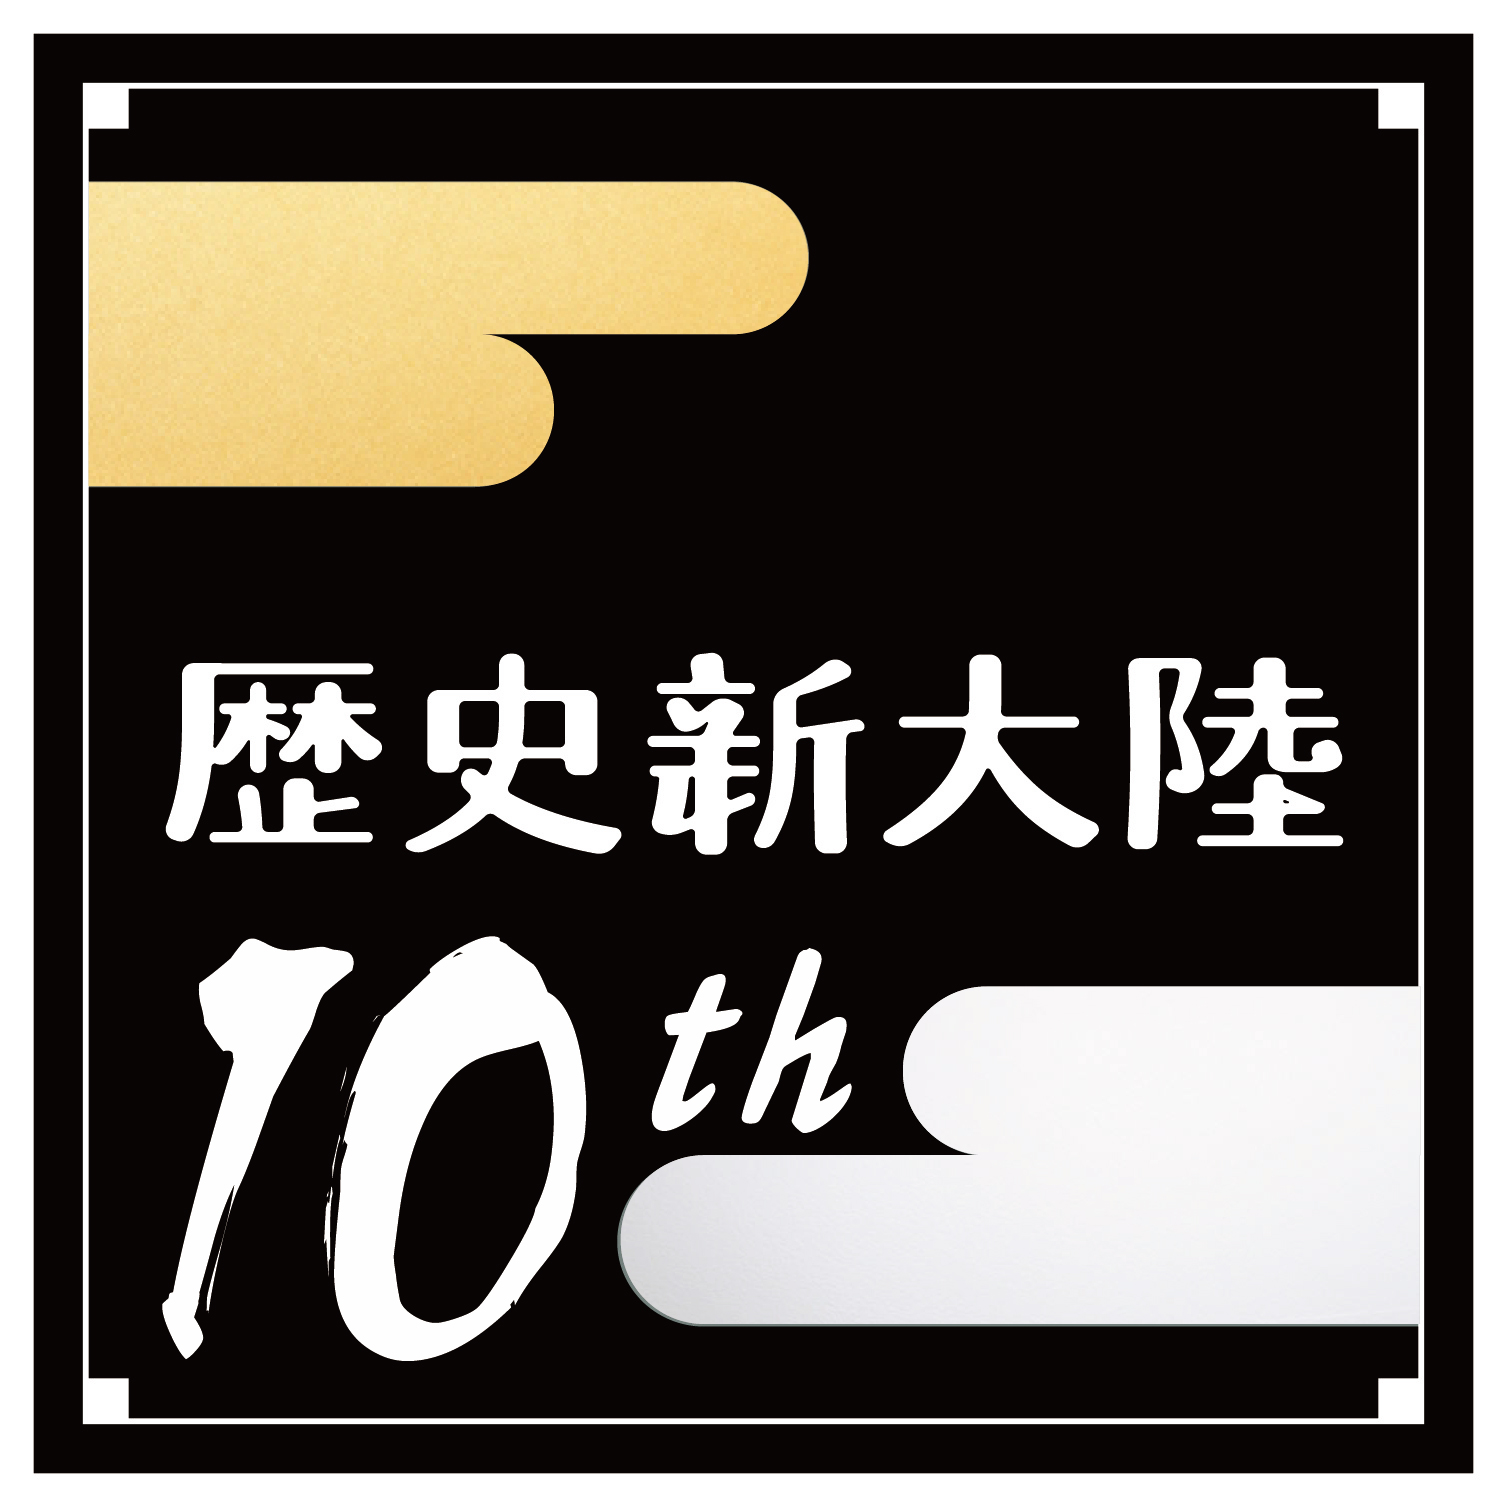 Logo10th-2017-RGB.jpg